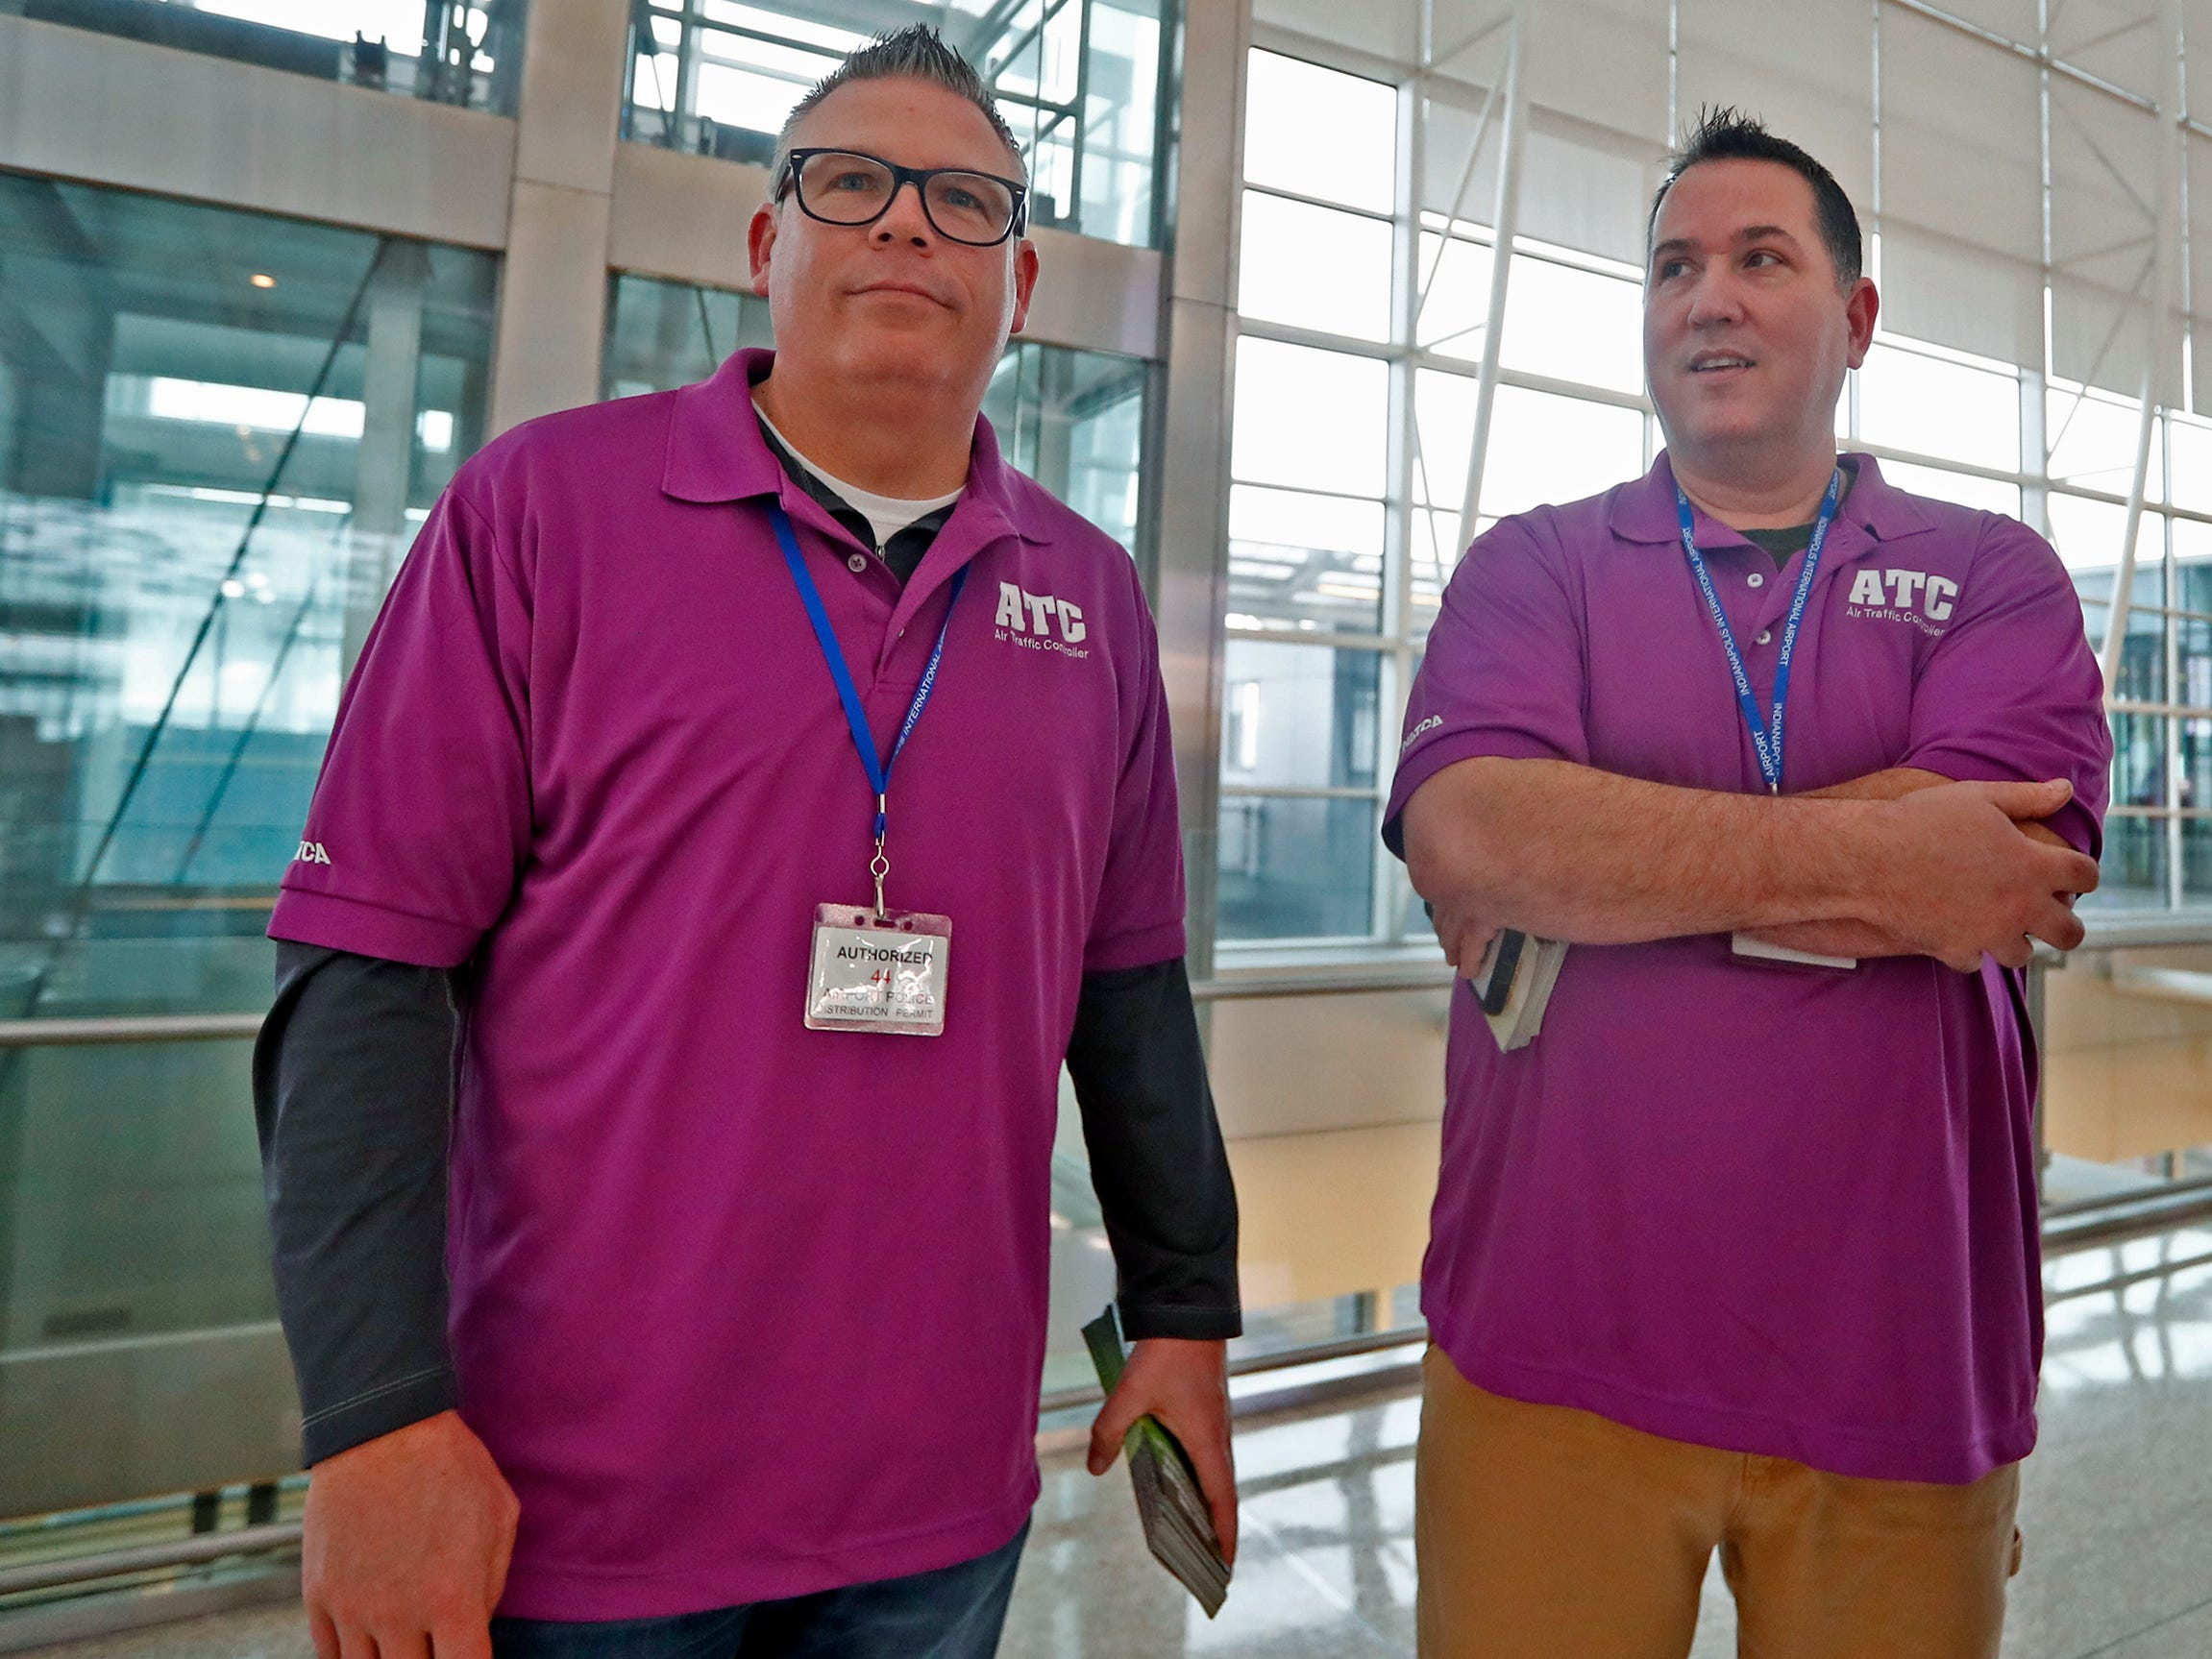 Drew MacQueen, left, Great Lakes Region Vice President for the NATCA, and Marc Schneider, Facilities Representative for Indianapolis, oversee air traffickers handing out information at the Indianapolis International Airport, Tuesday, Jan. 15, 2019.  Members of the National Air Traffic Controllers Association (NATCA) handed out the pamphlets to travelers to ask for the end of the government shutdown and to list ways the shutdown has affected the aviation safety.